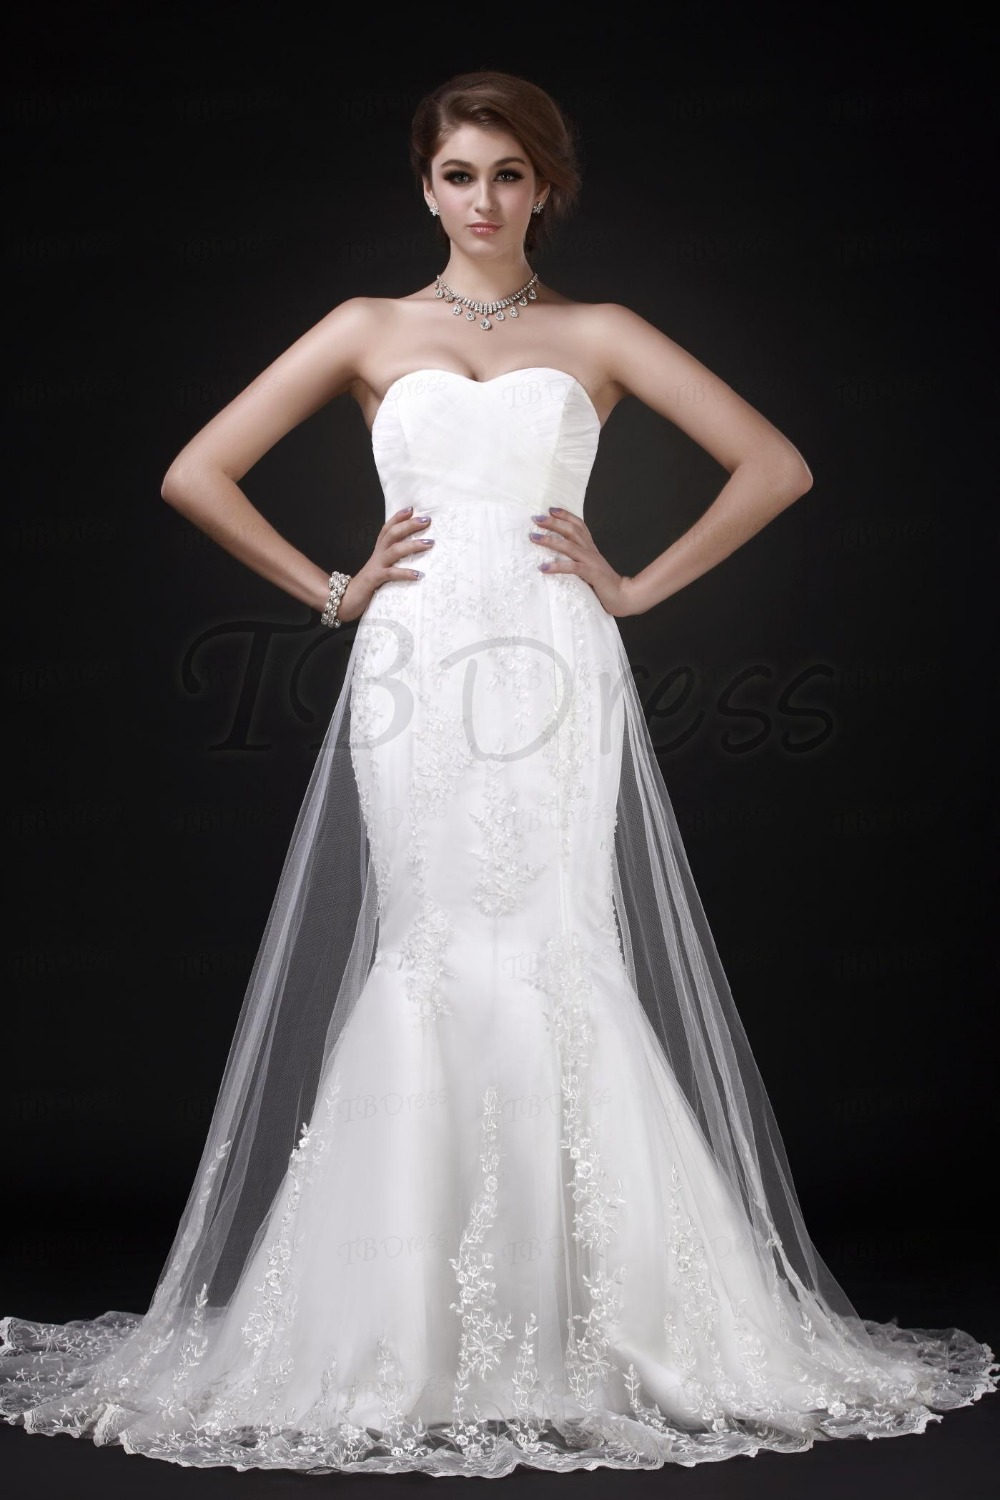 White Charming Mermaid Trumpet Sweetheart Neckline Chapel Length Wedding Dress Off The Shoulder